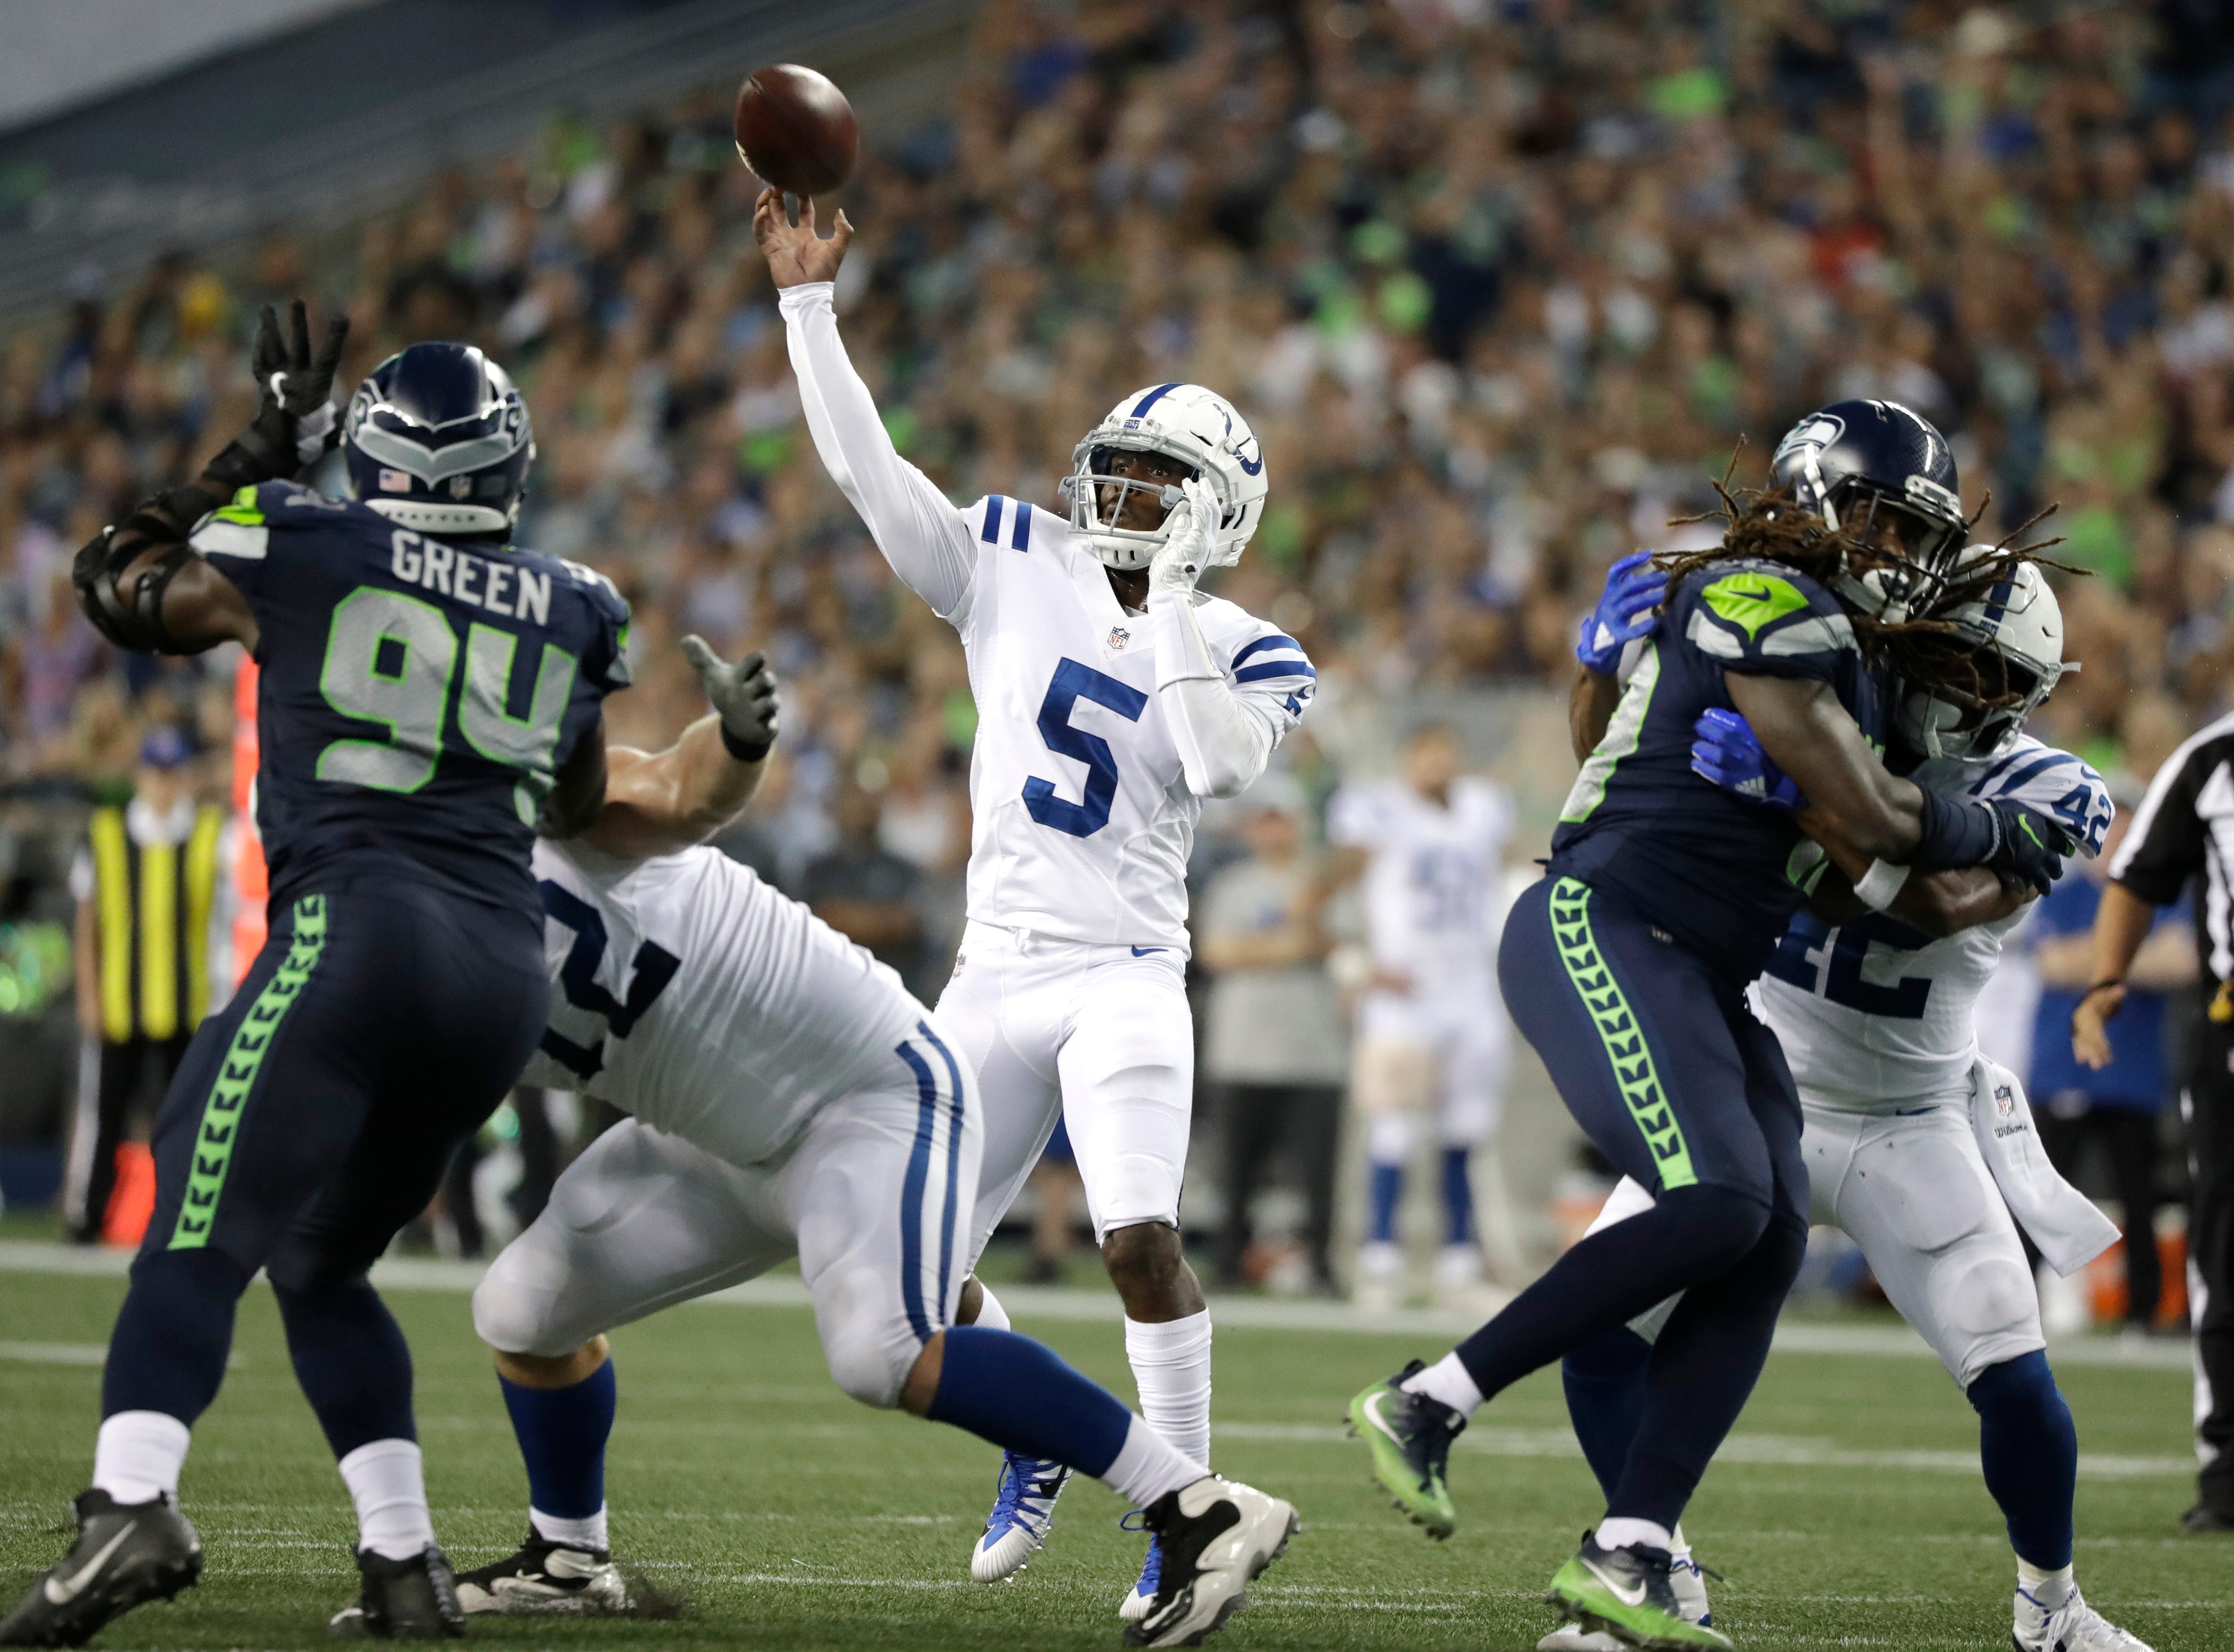 Indianapolis Colts backup quarterback Phillip Walker (5) throws a pass against the Seattle Seahawks during the second half of an NFL football preseason game Thursday, Aug. 9, 2018, in Seattle. (AP Photo/Elaine Thompson)